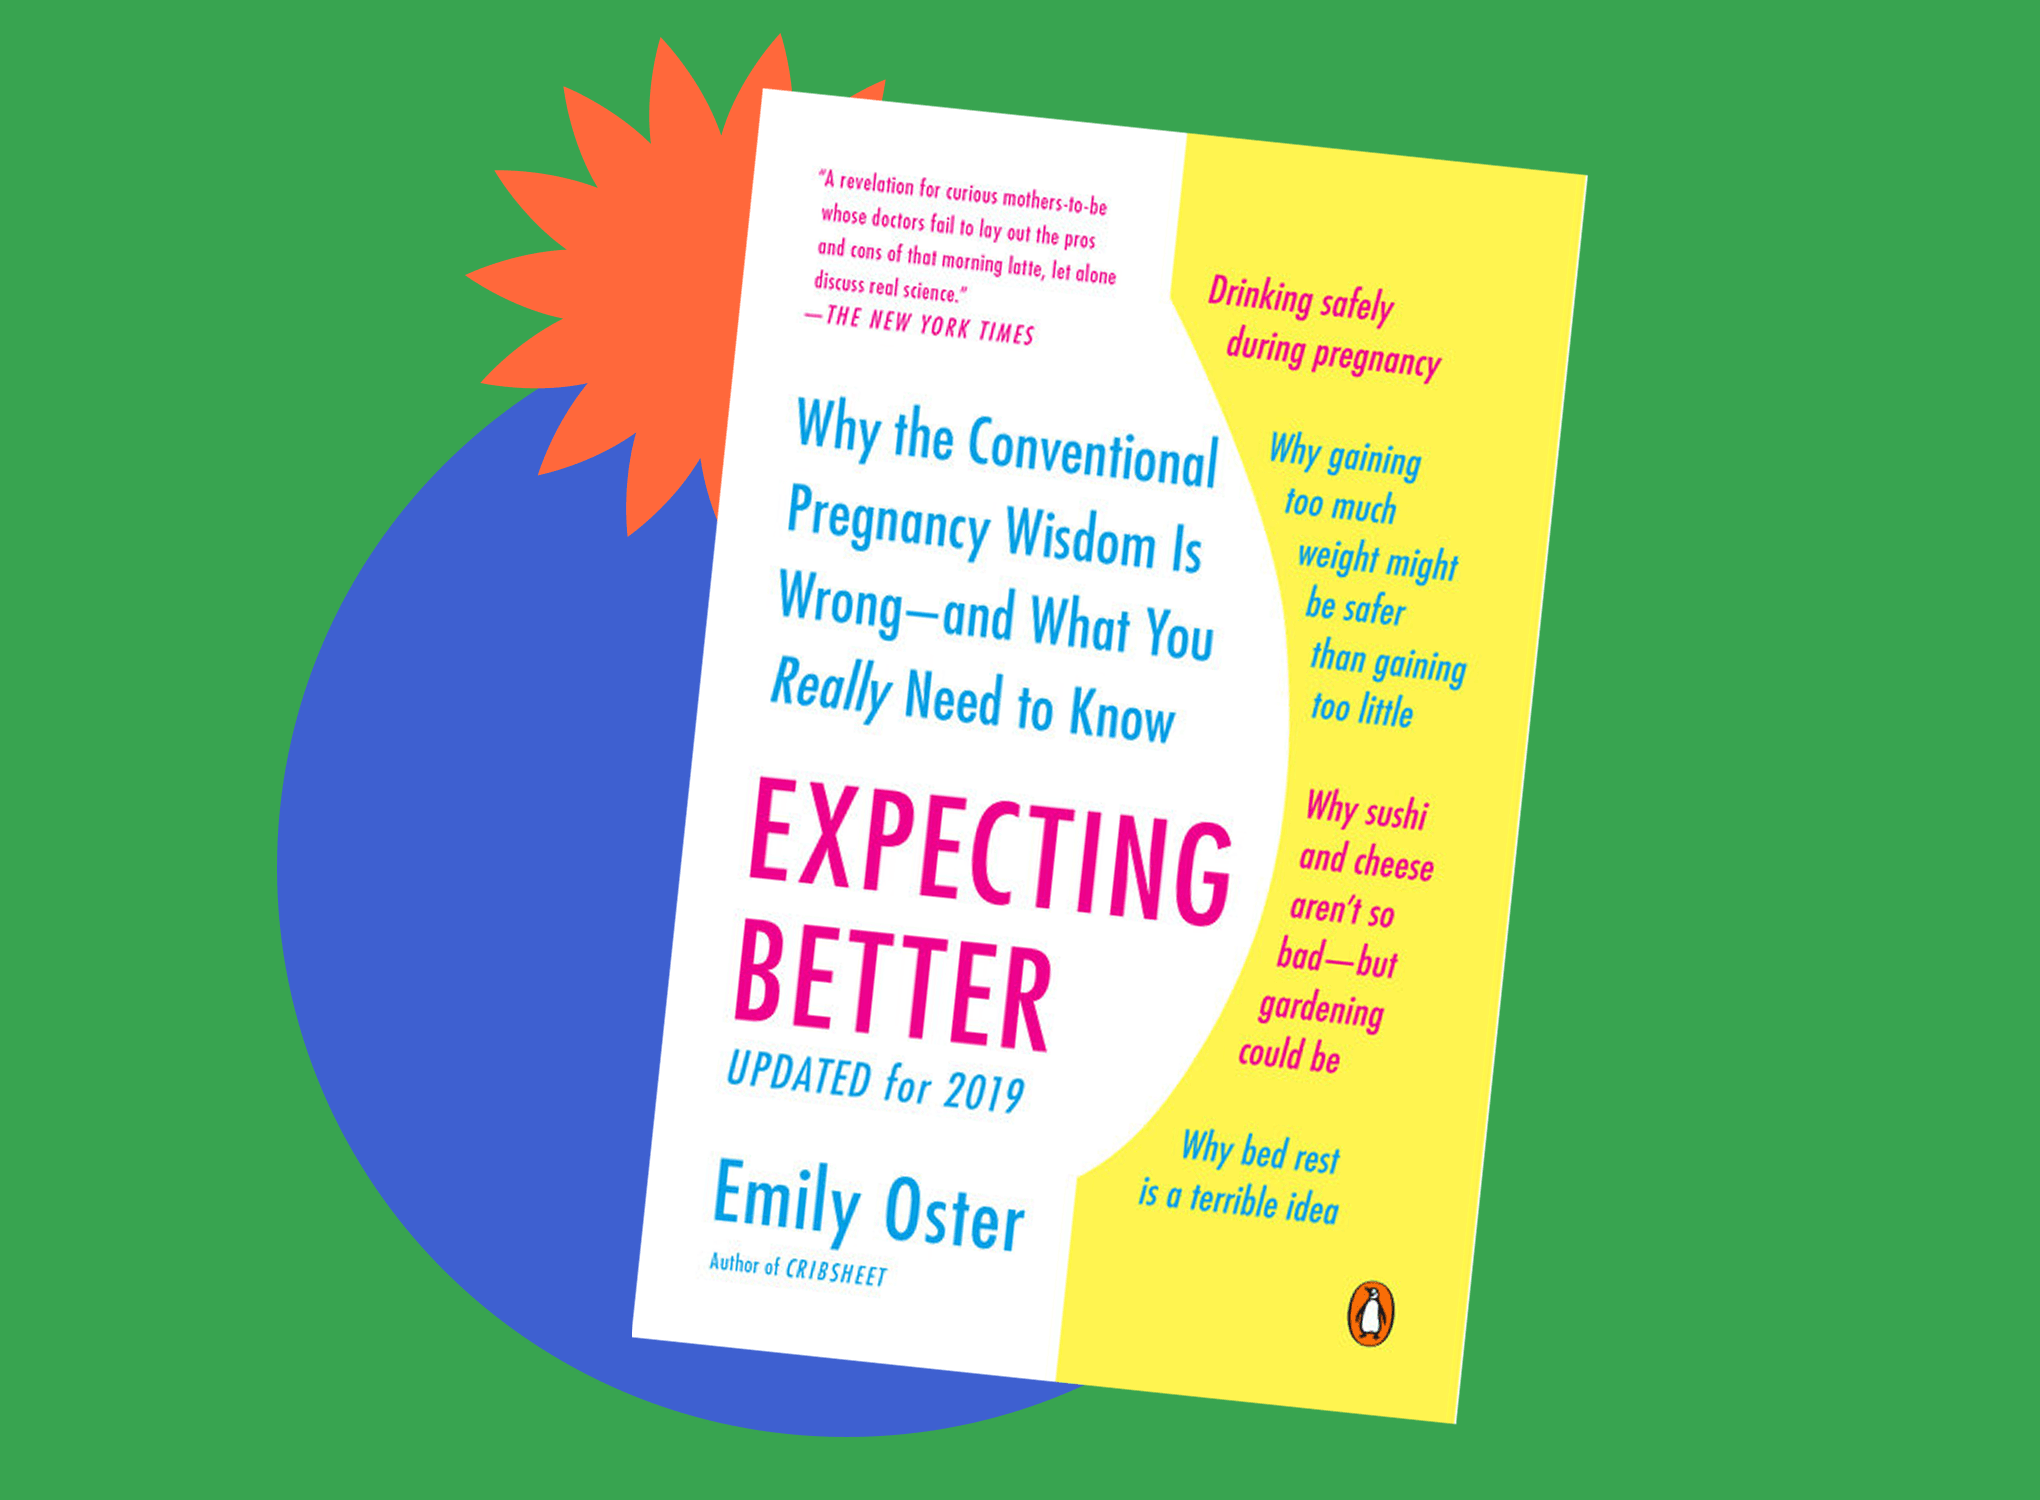 Book jacket cover of Expecting Better by Emily Oster